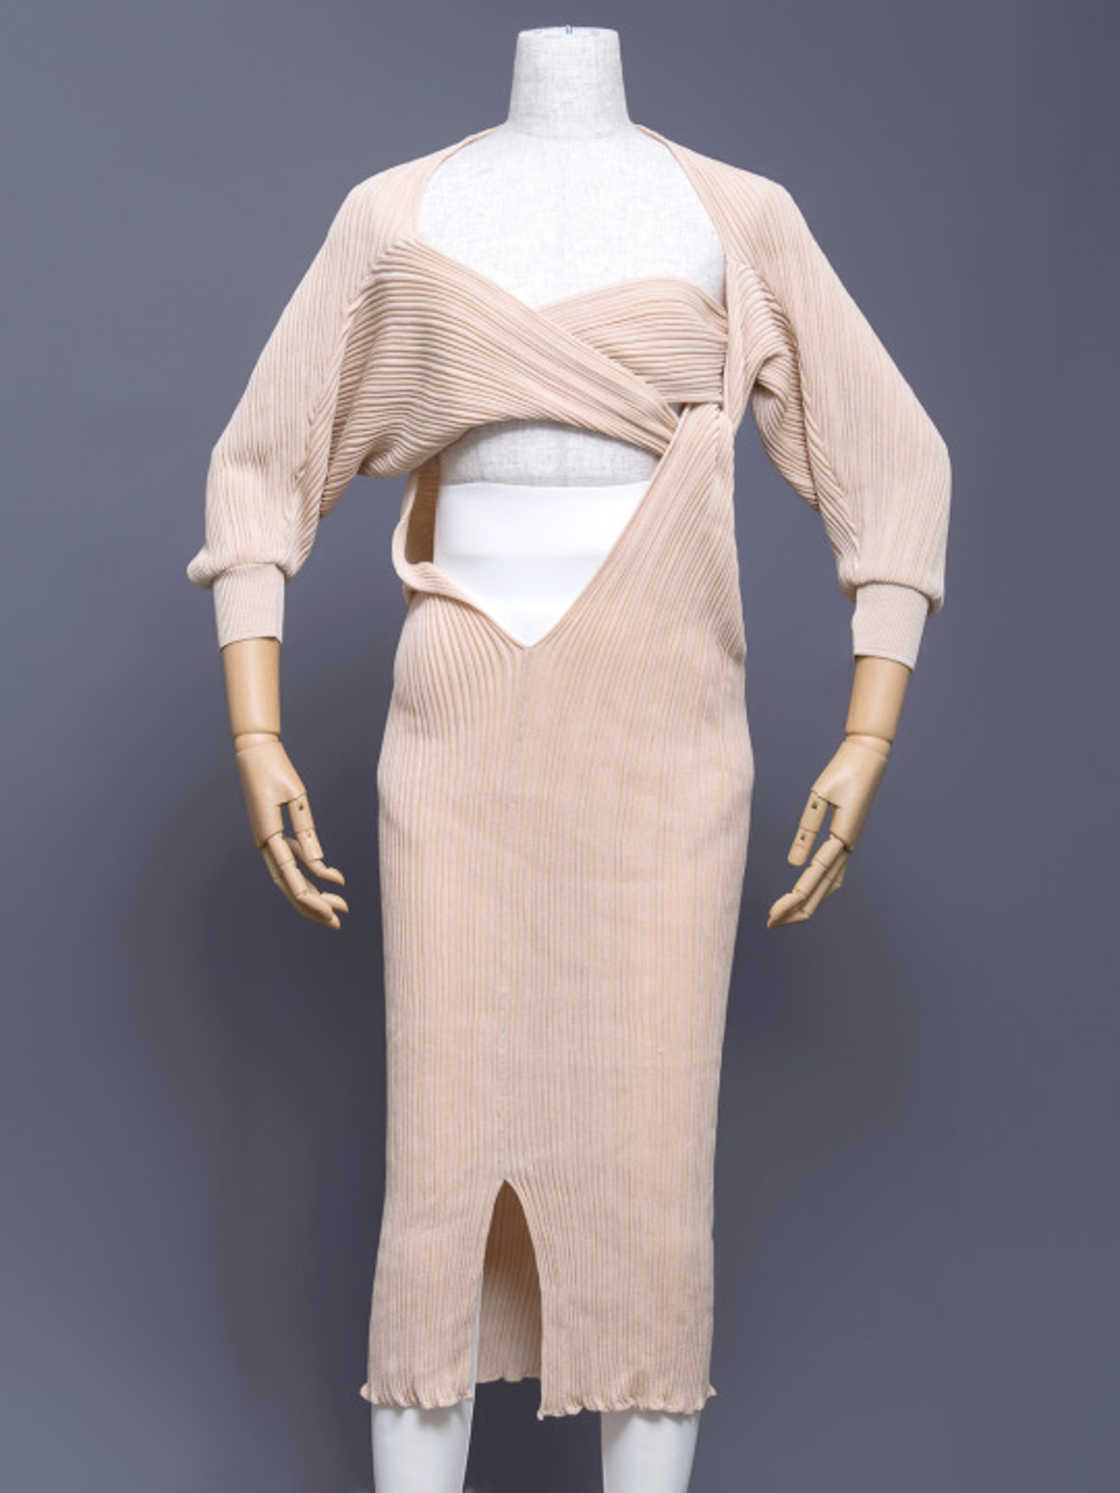 Japanese Fashion Archive - Dive into Japanese fashion from the 70s to the 90s